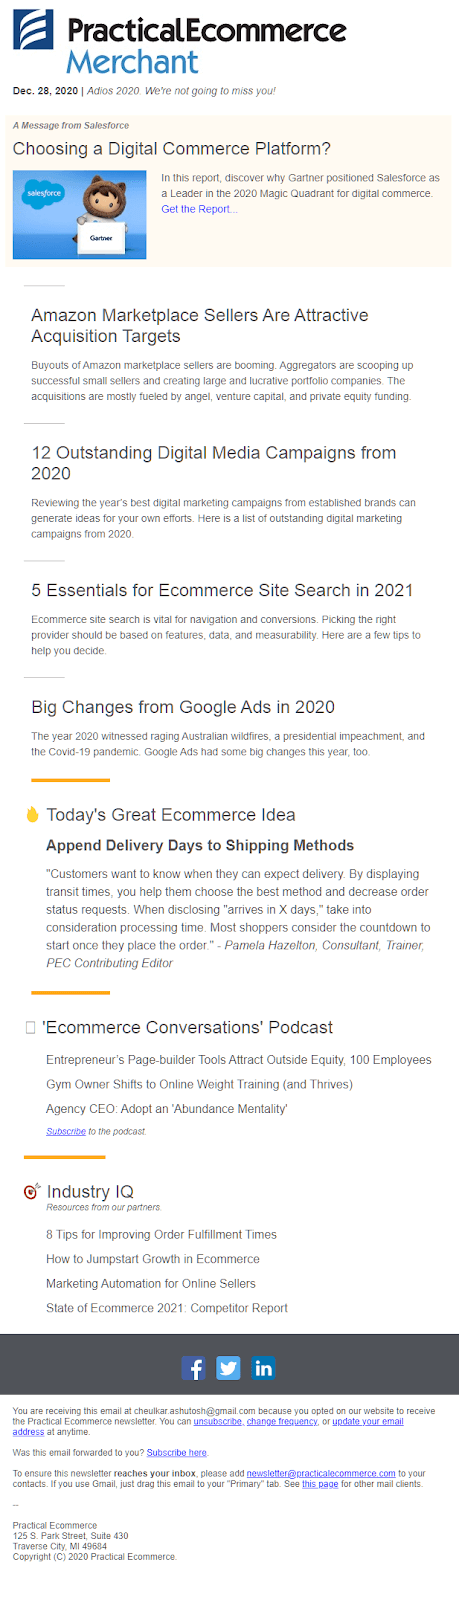 Practical eCommerce newsletter